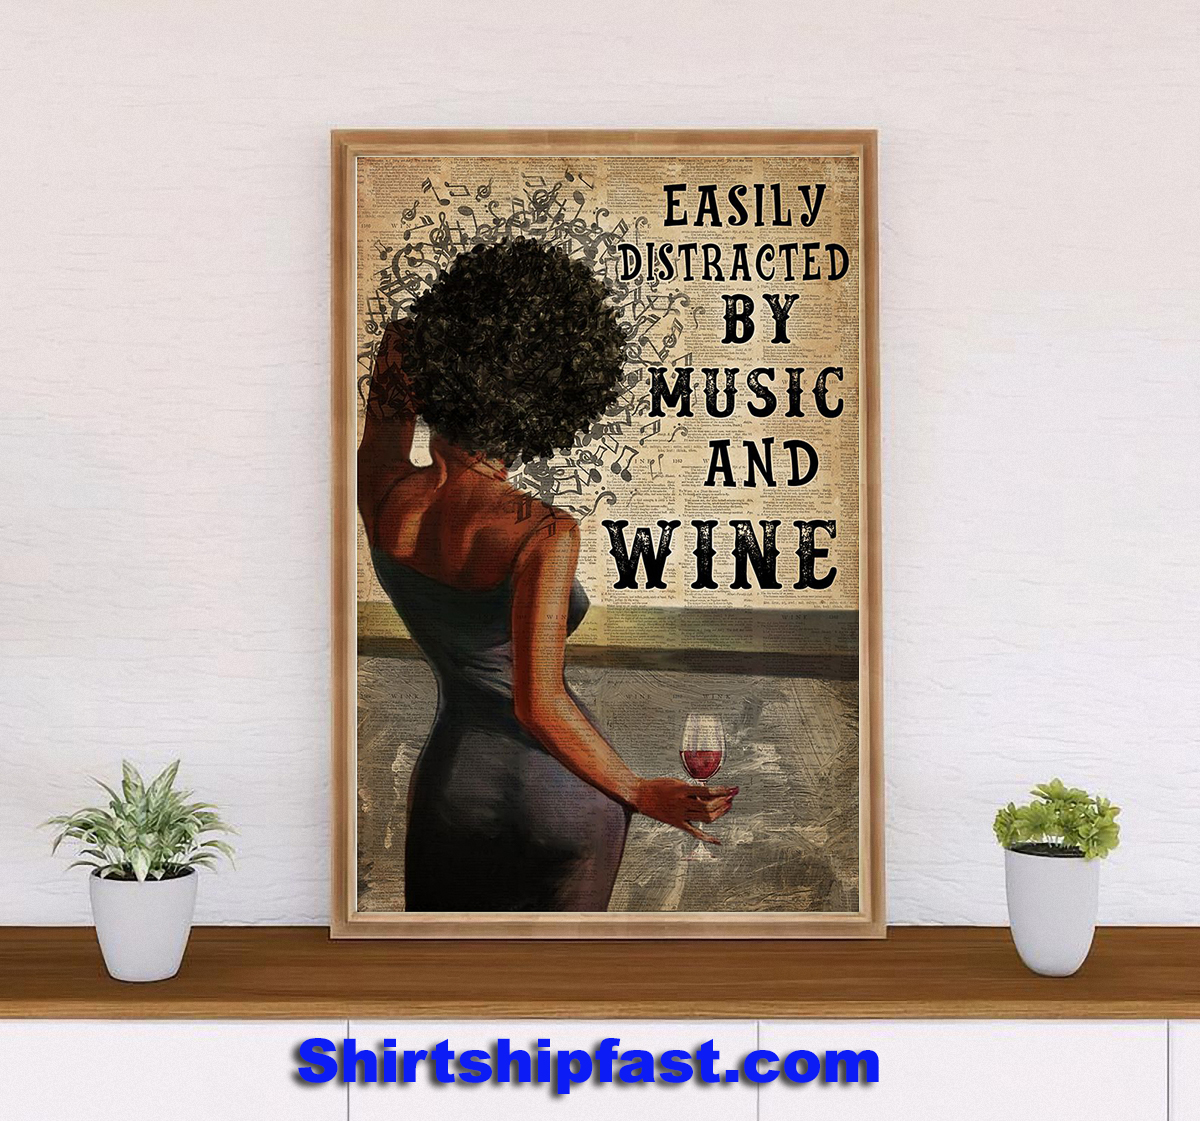 Black Woman easily distracted by music and wine canvas - Picture 2